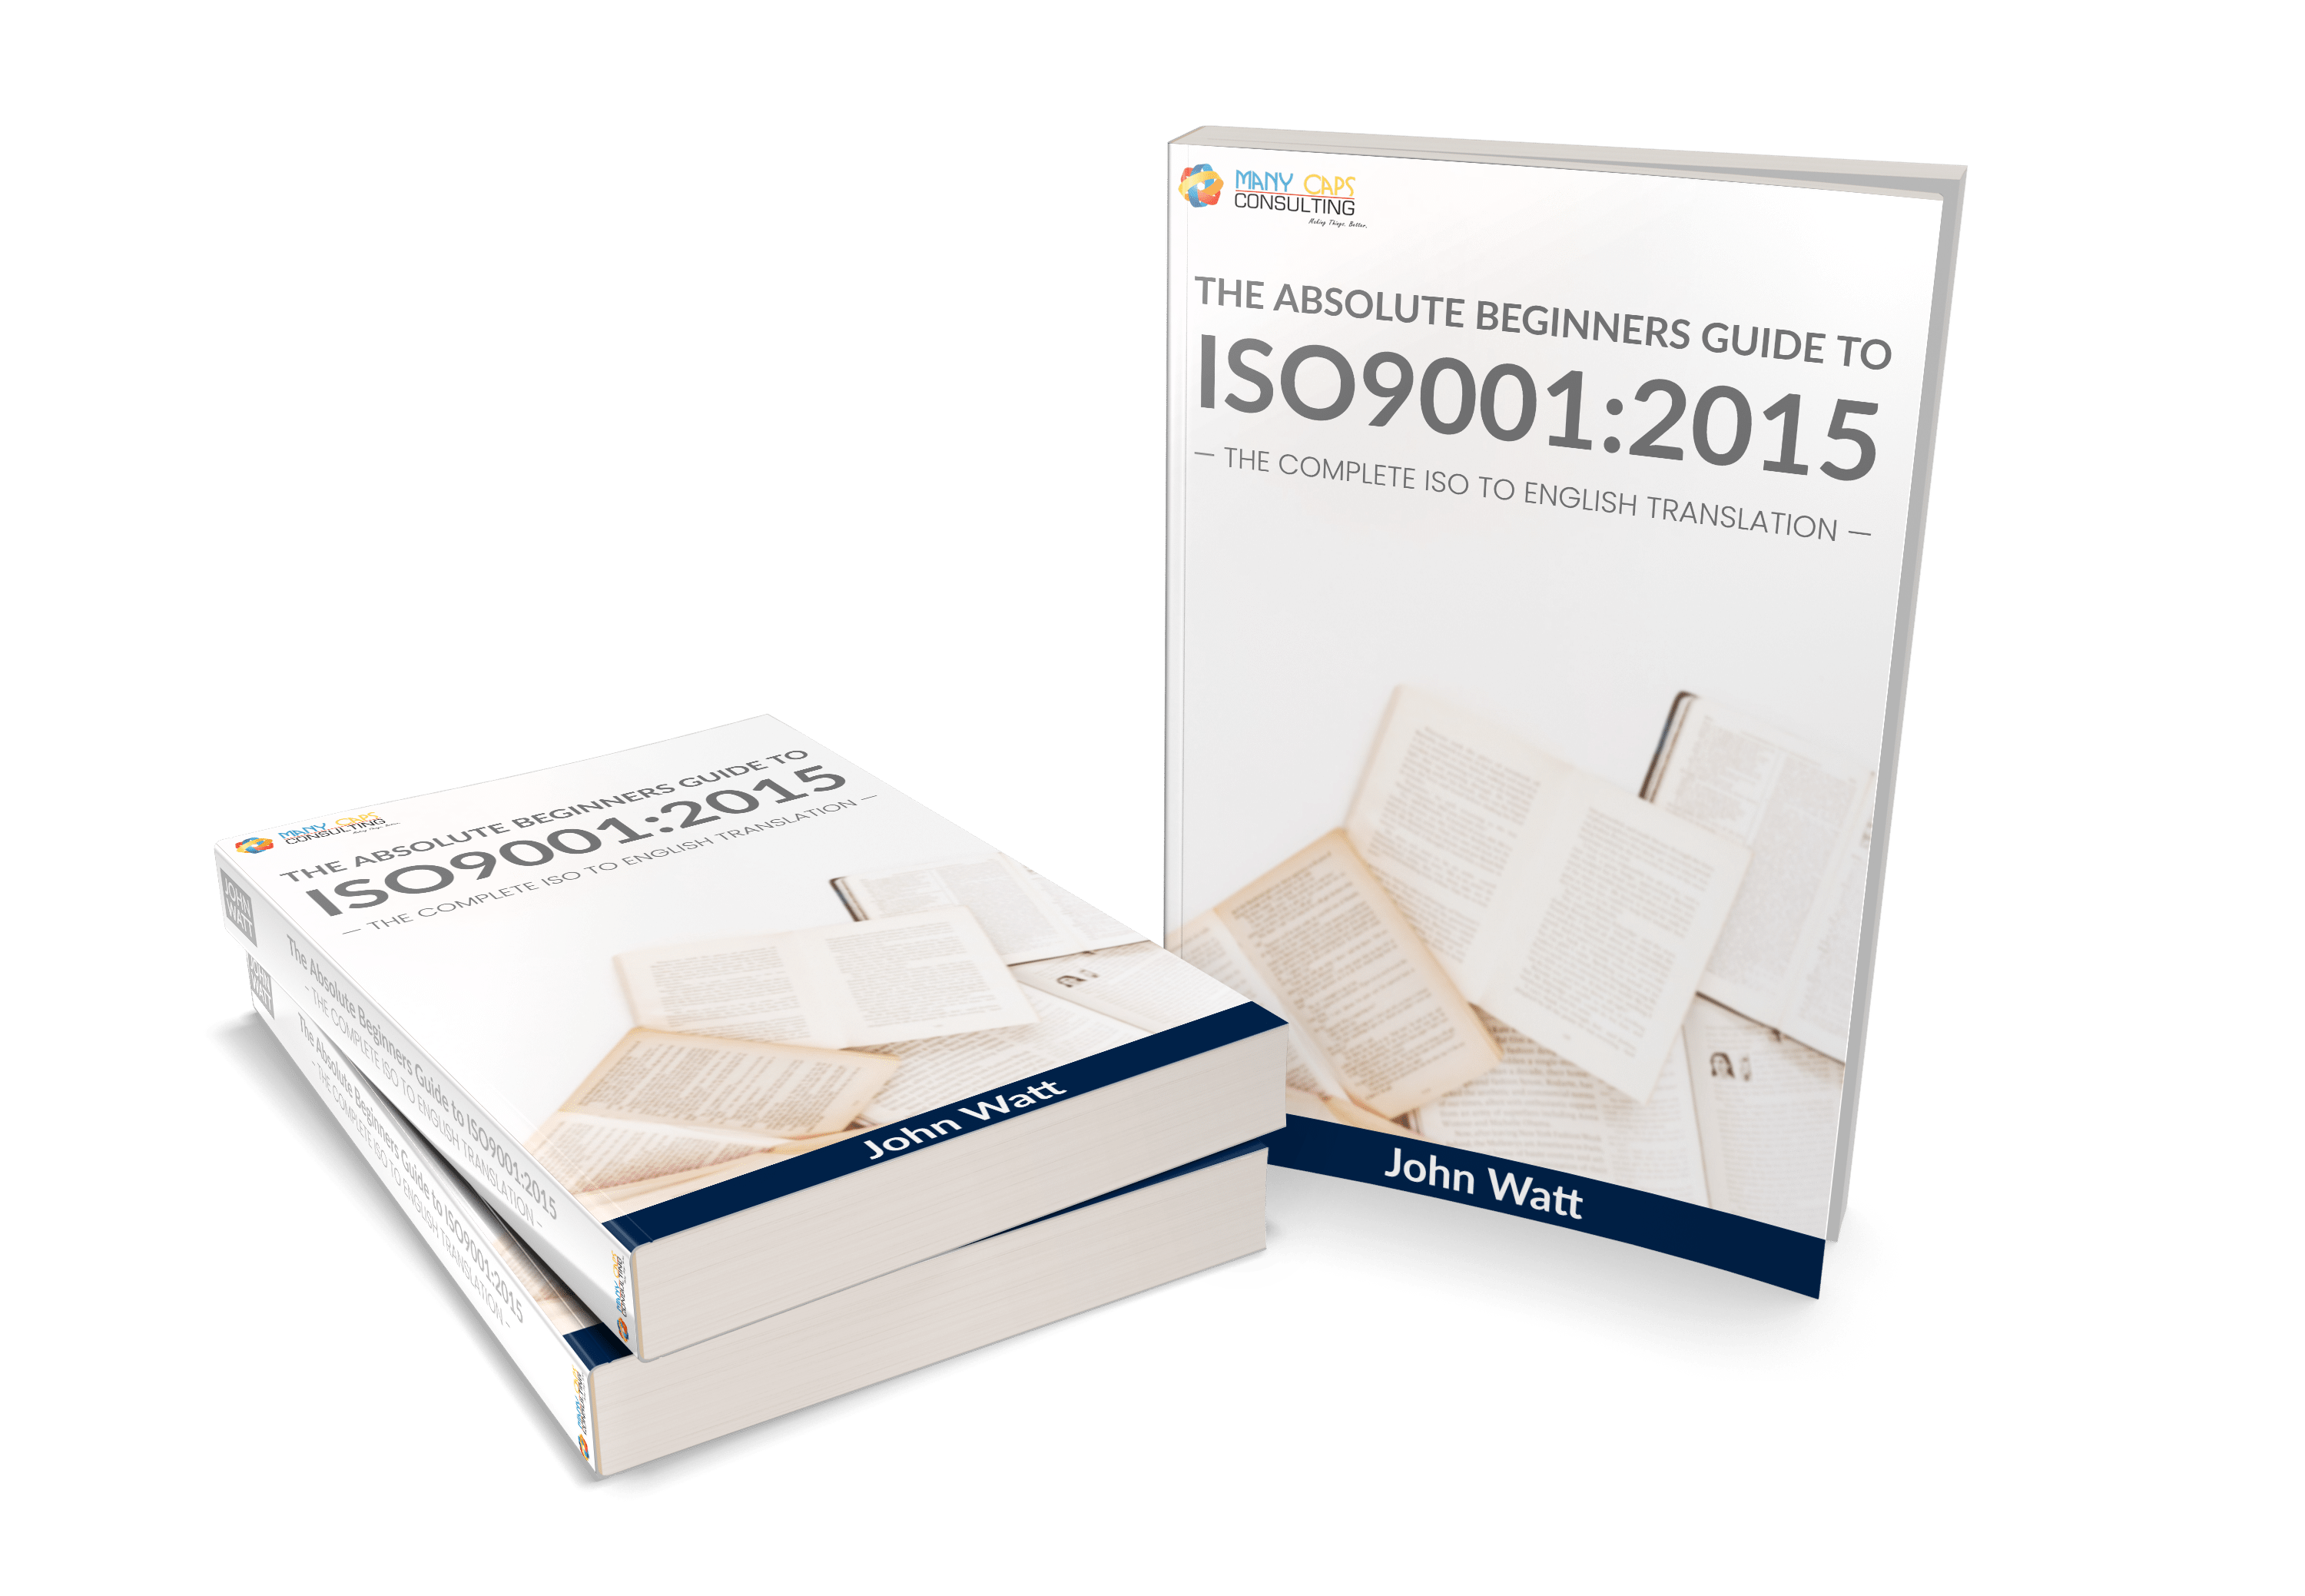 Absolute Beginners Guide to ISO9001:2015 books